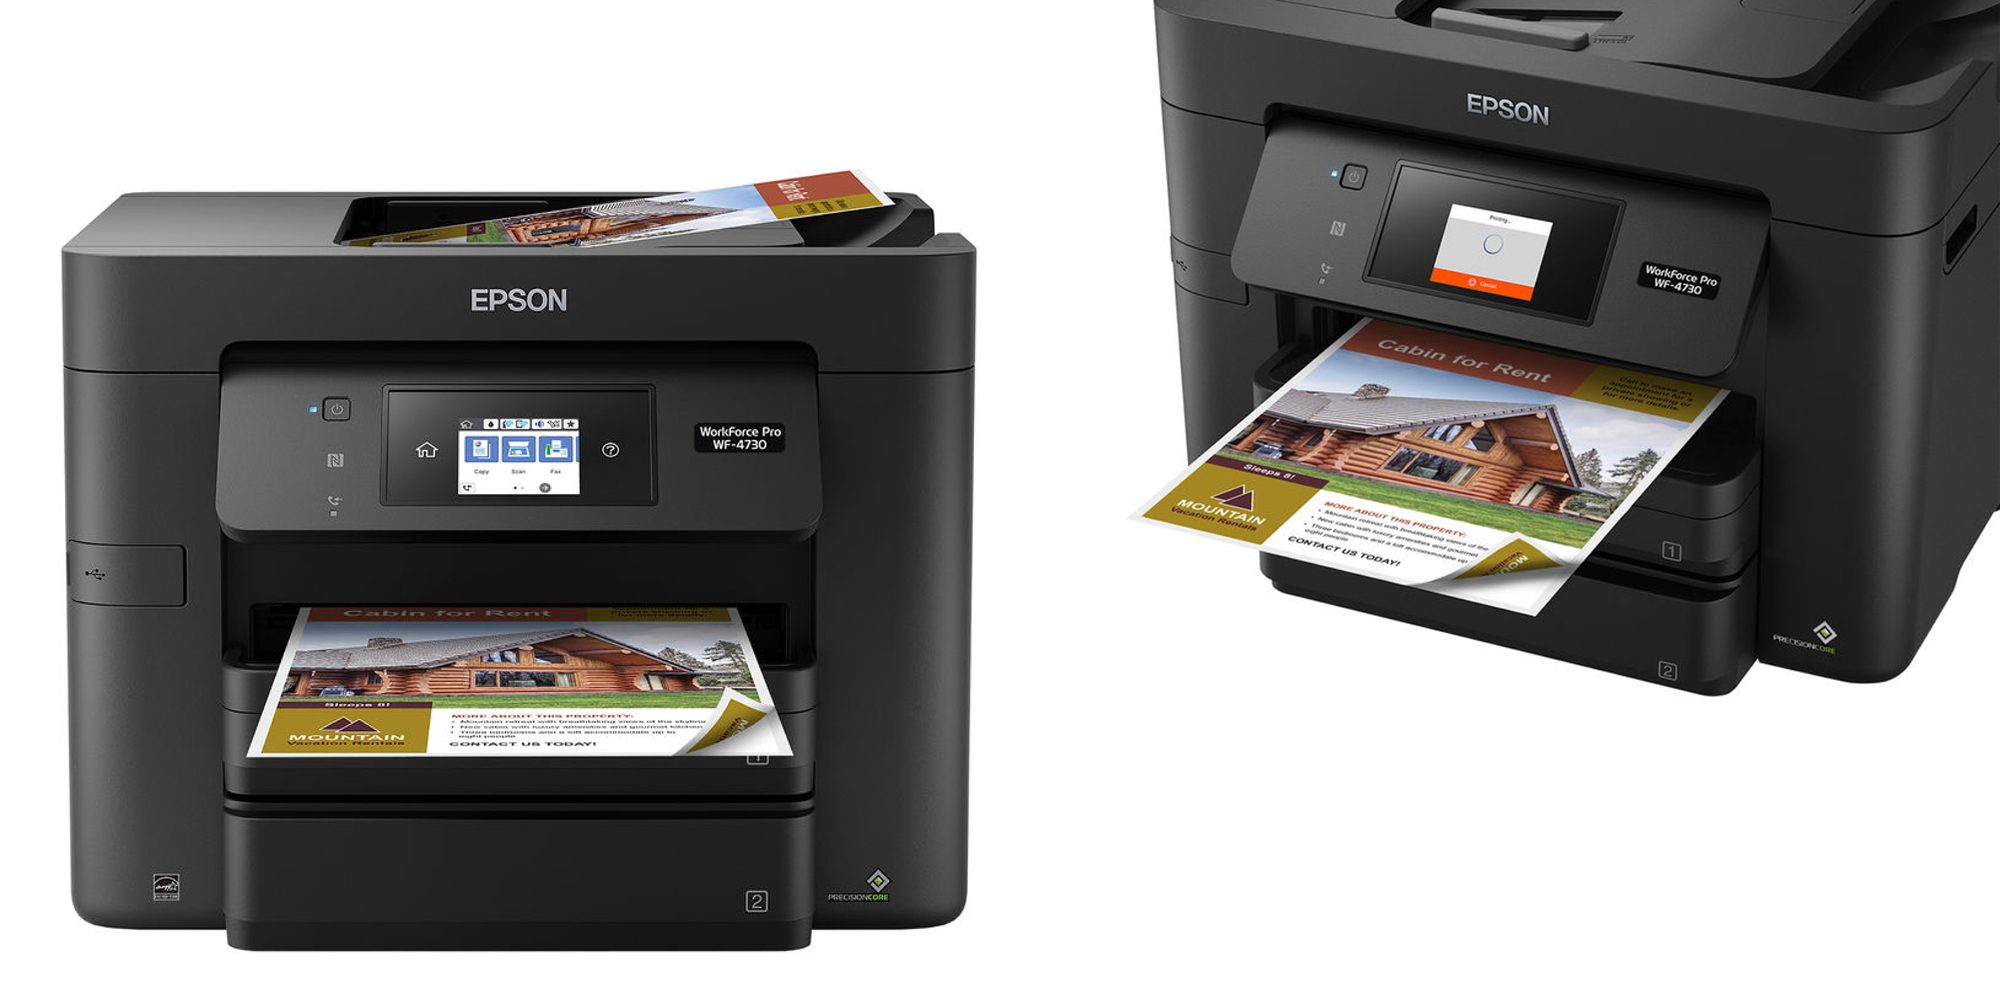 Siri Shortcuts and Google Assistant learn to print and scan documents with Epson printers